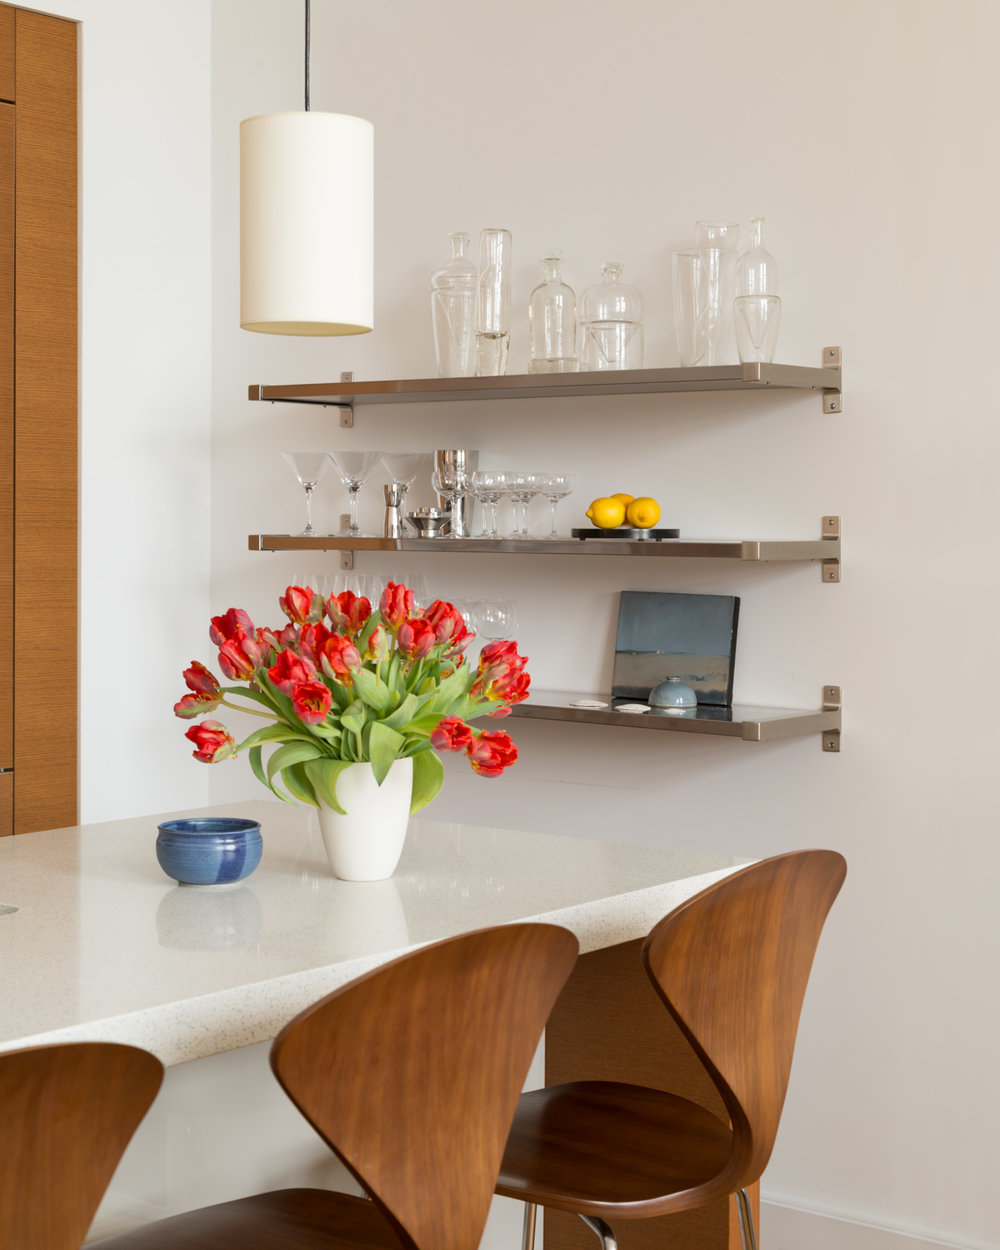 Jones-Rowan-Studio_Interior-Design_Brooklyn-Heights-Loft_Kitchen .jpg